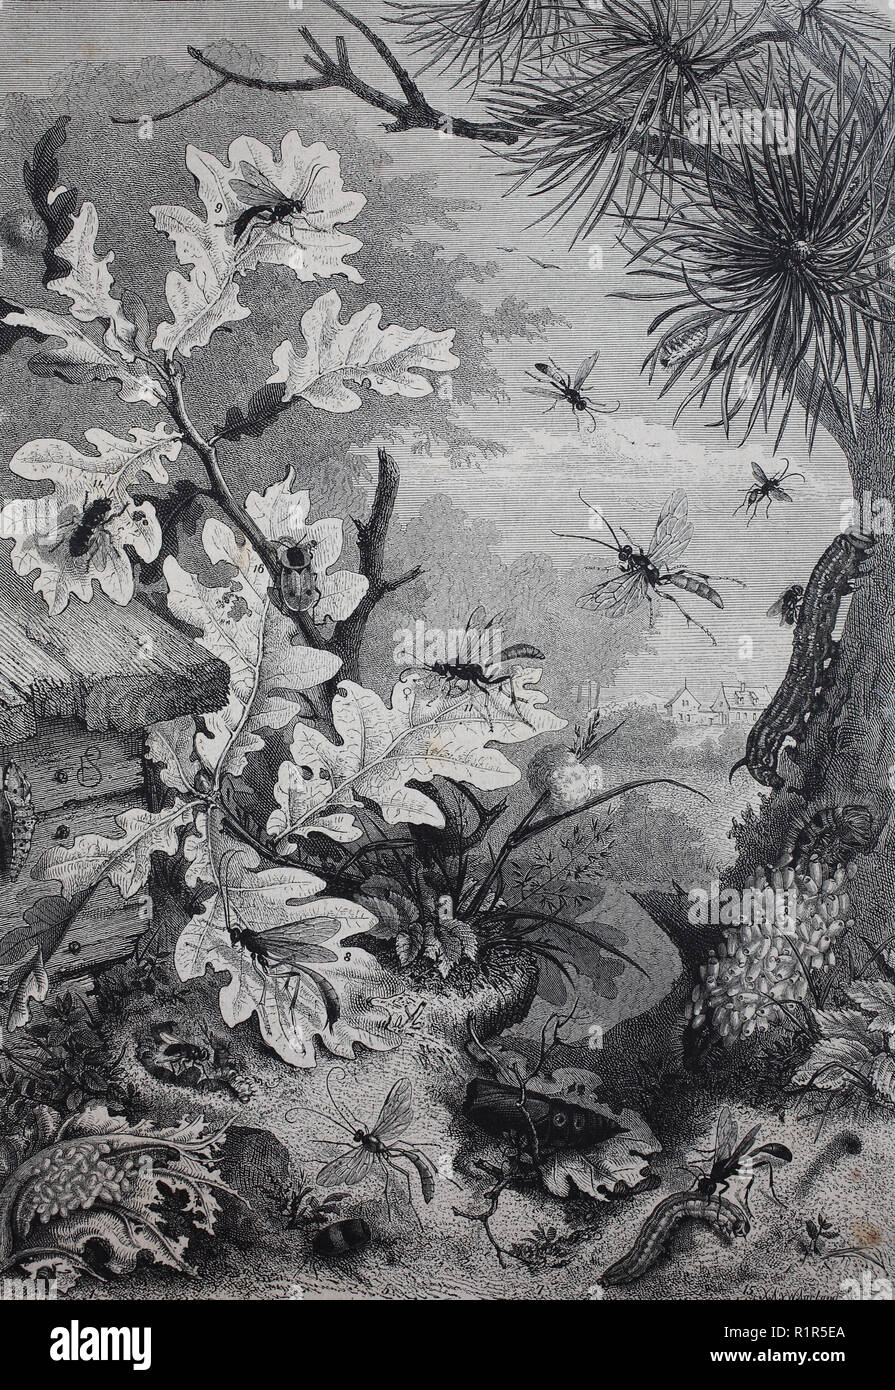 Digital improved reproduction, Caterpillars destroy insects on an oak, original print from the year 1880 - Stock Image